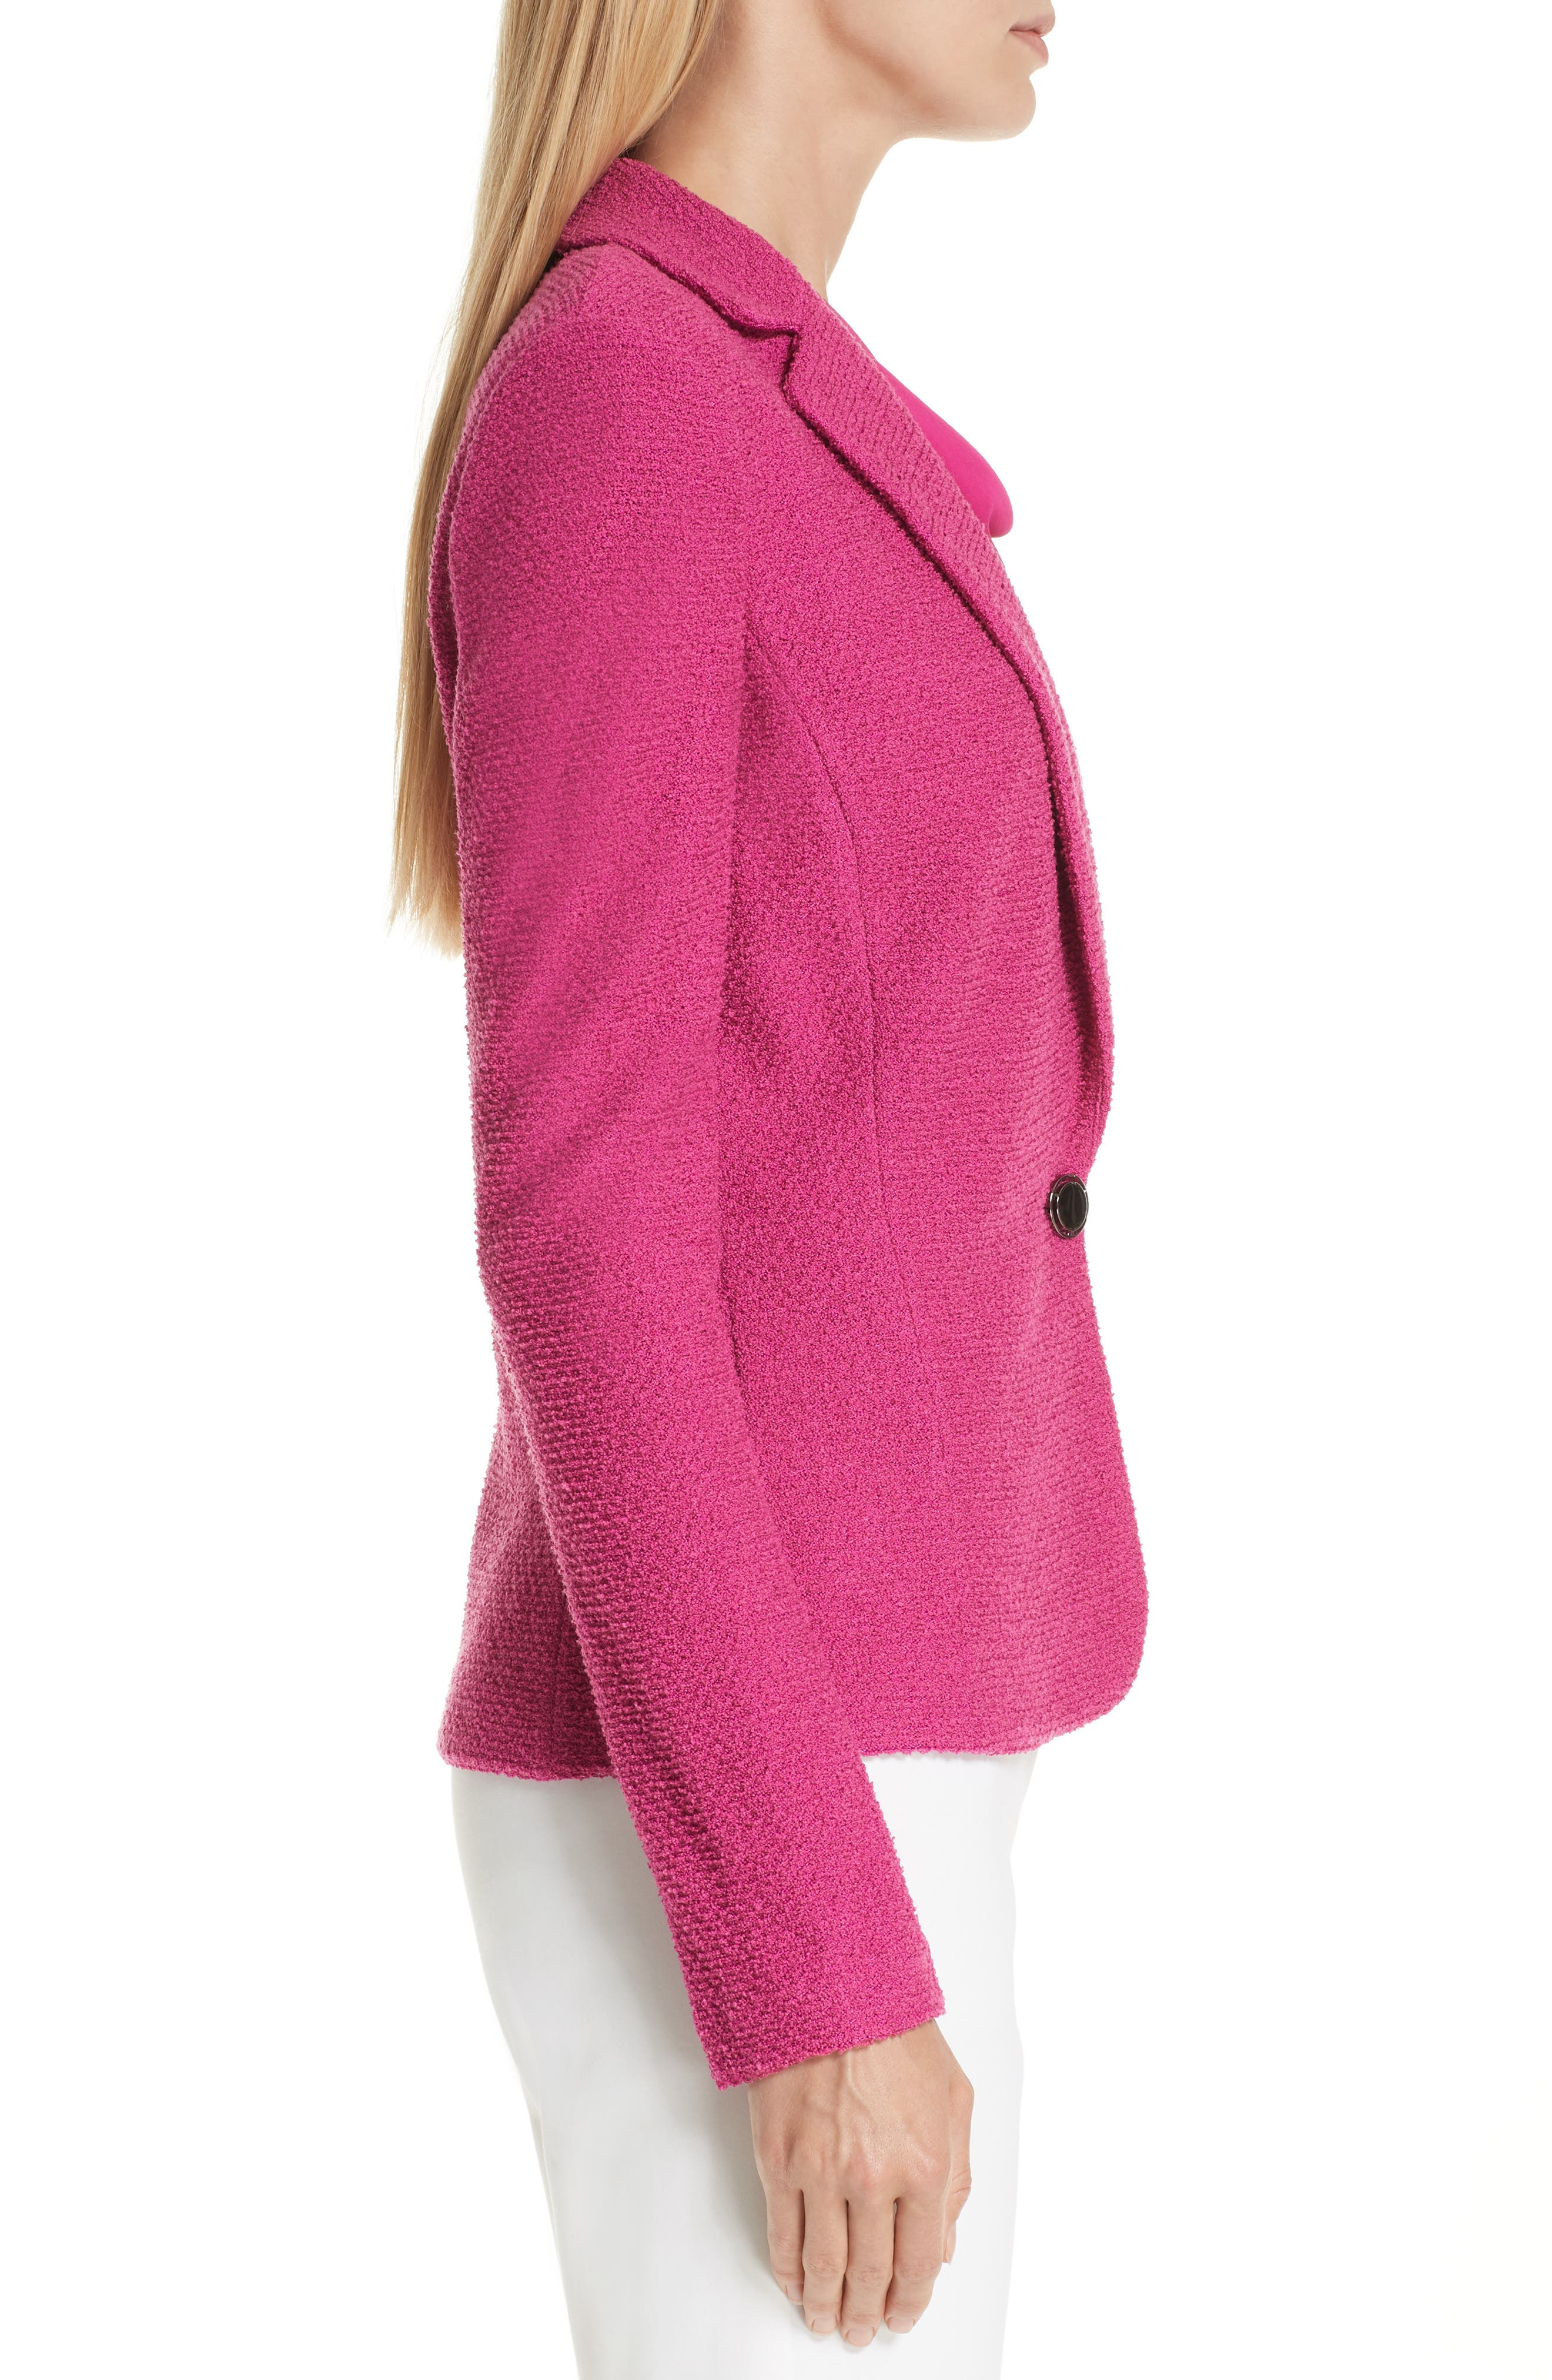 ST. JOHN COLLECTION, Refined Knit Jacket, Alternate thumbnail 4, color, CAMELLIA